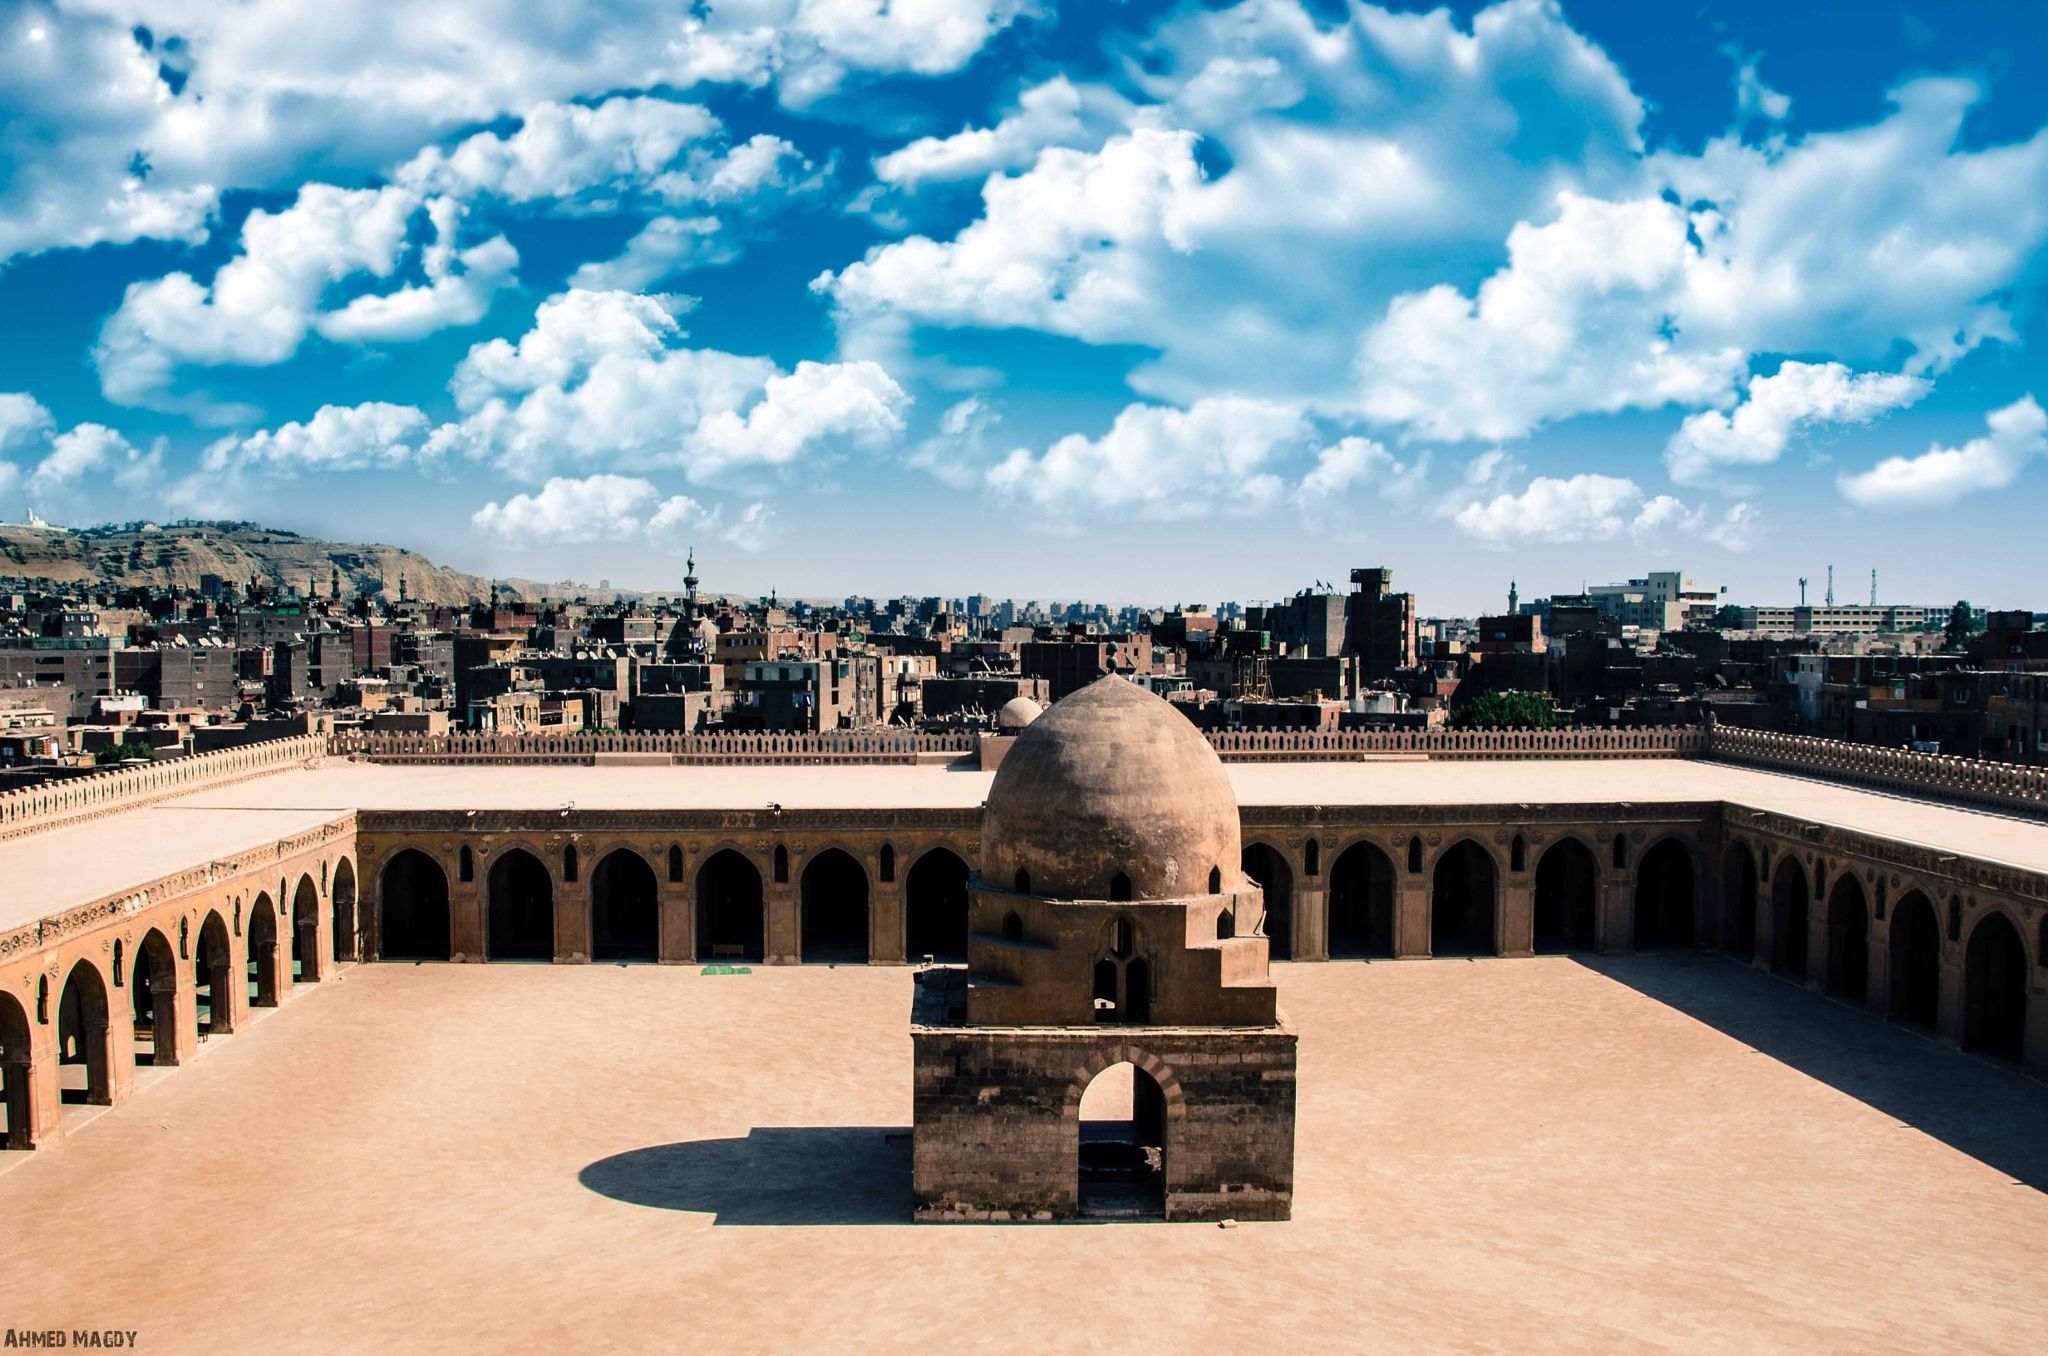 Masjid Ibn Tulun in Egypt by Ahmed Magdy